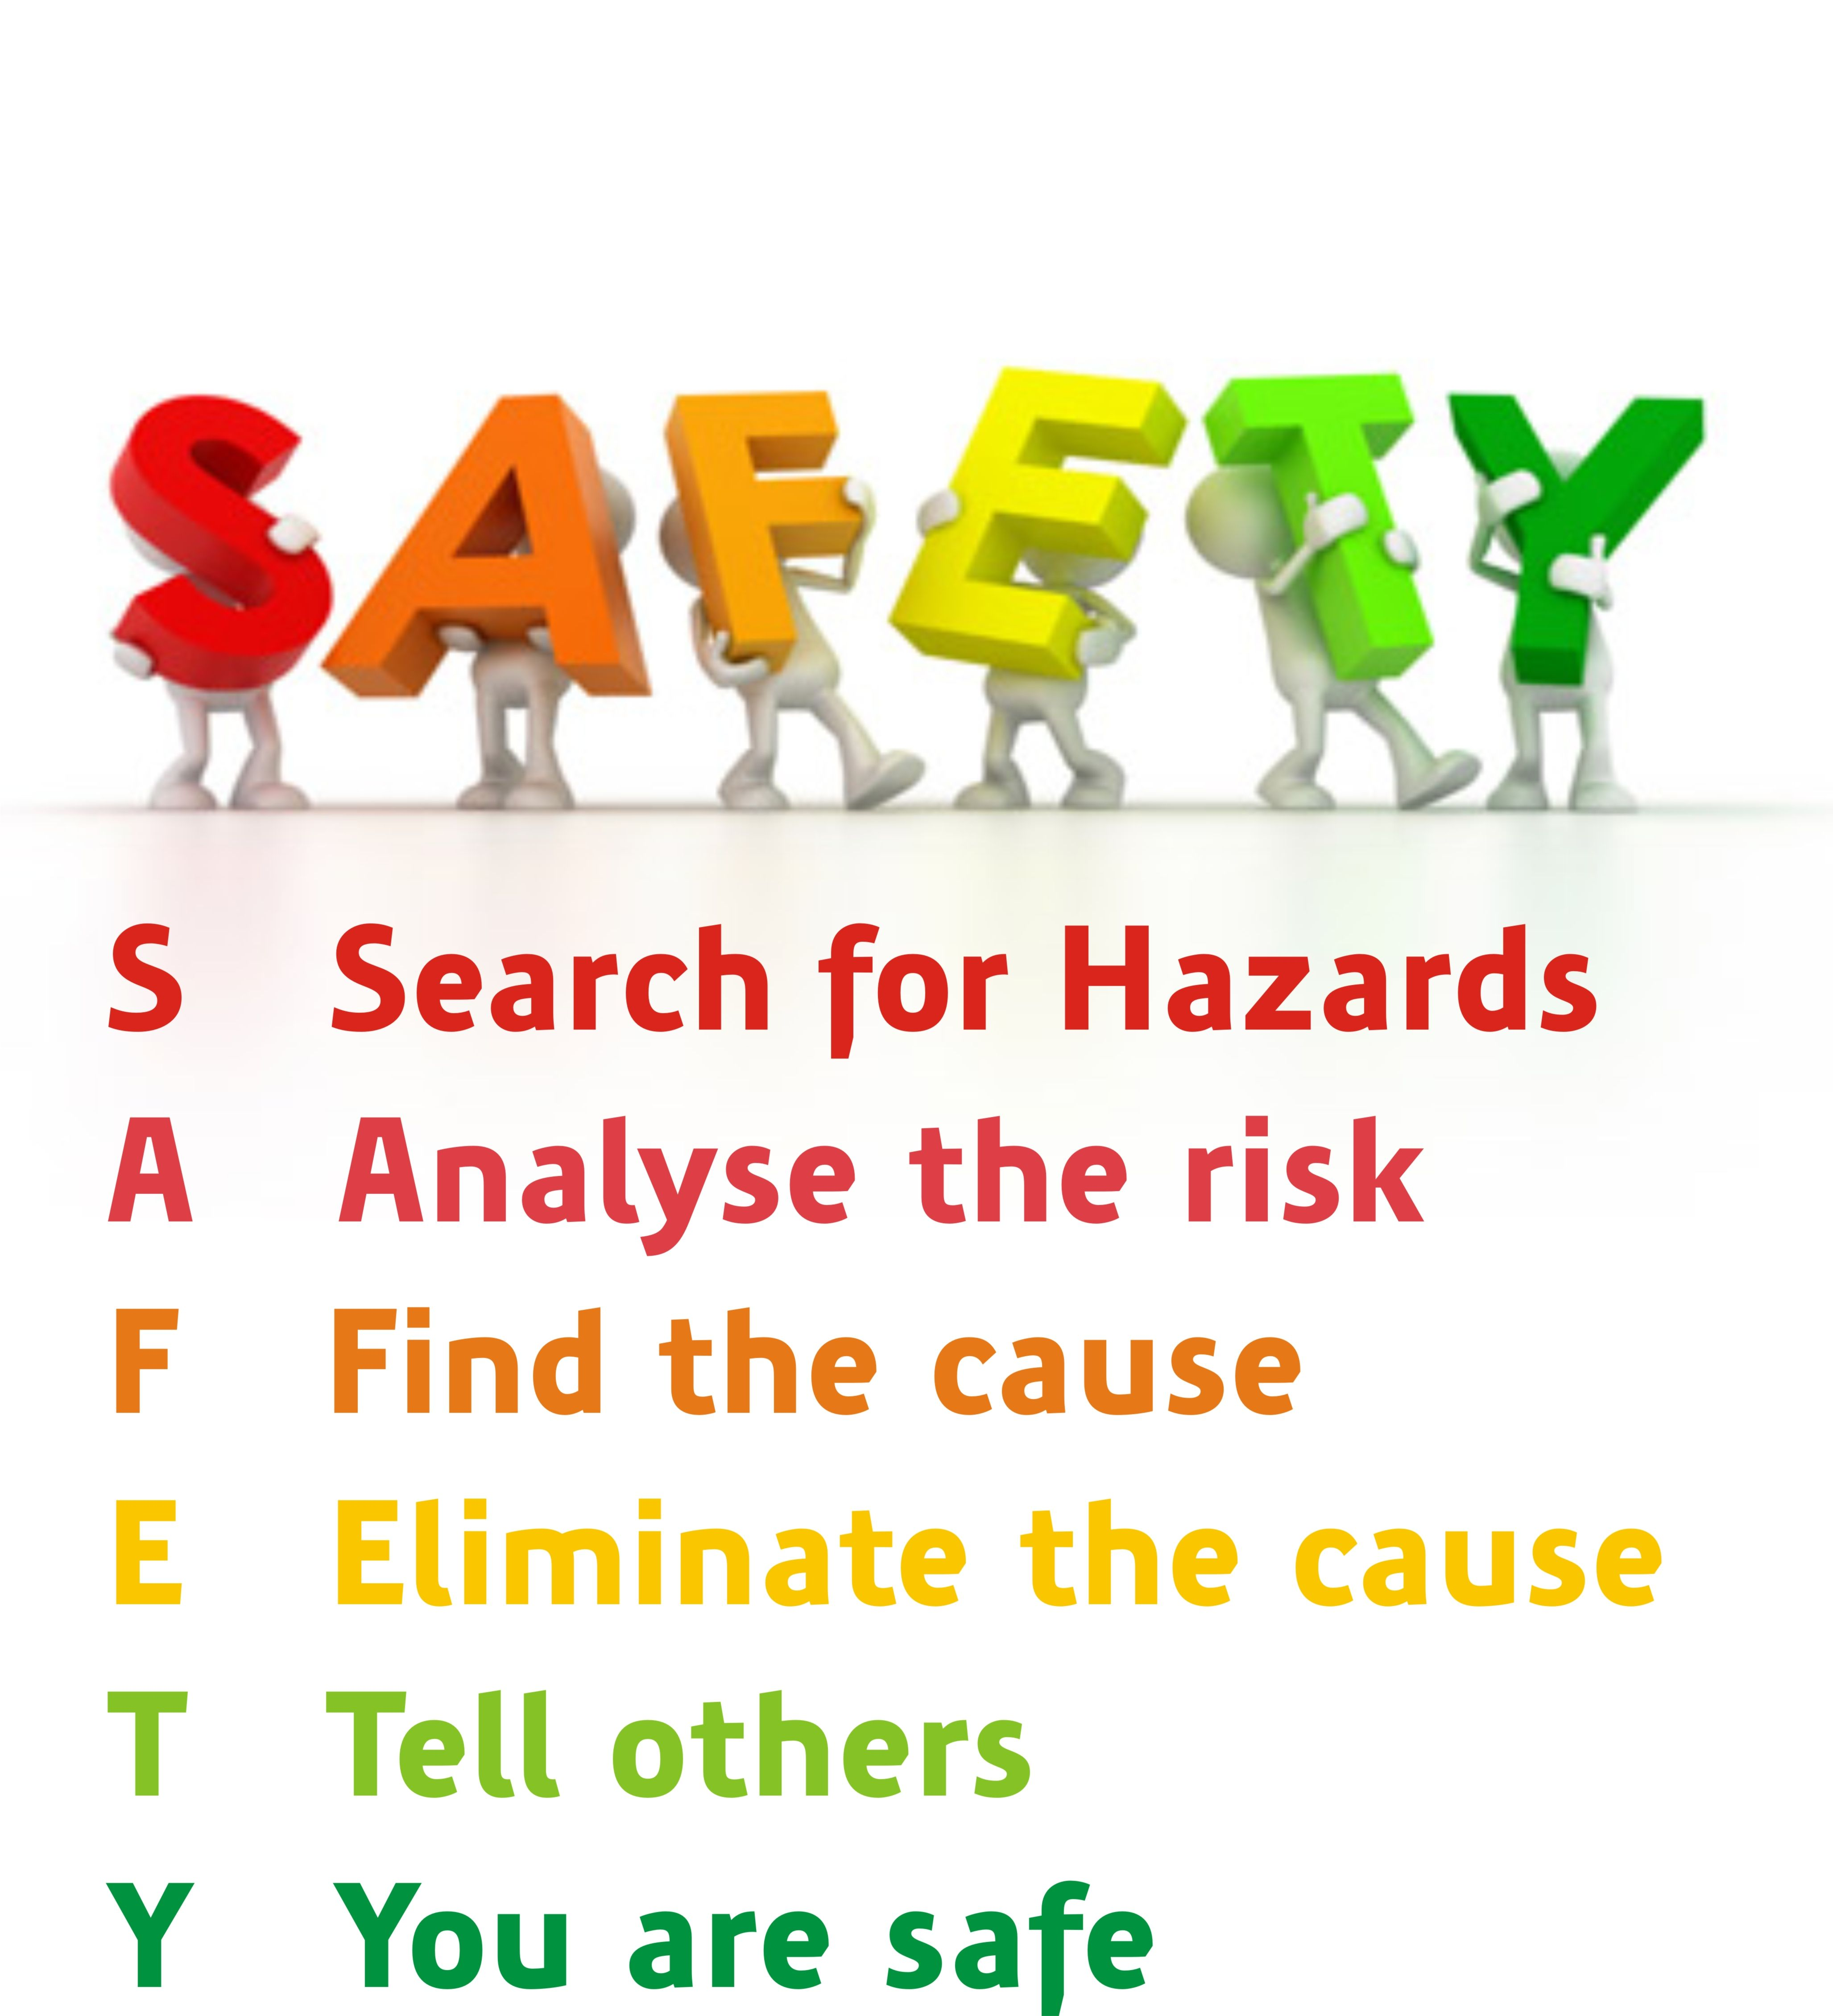 Safety Search, Analyse, Find, Eliminate, Tell, You are